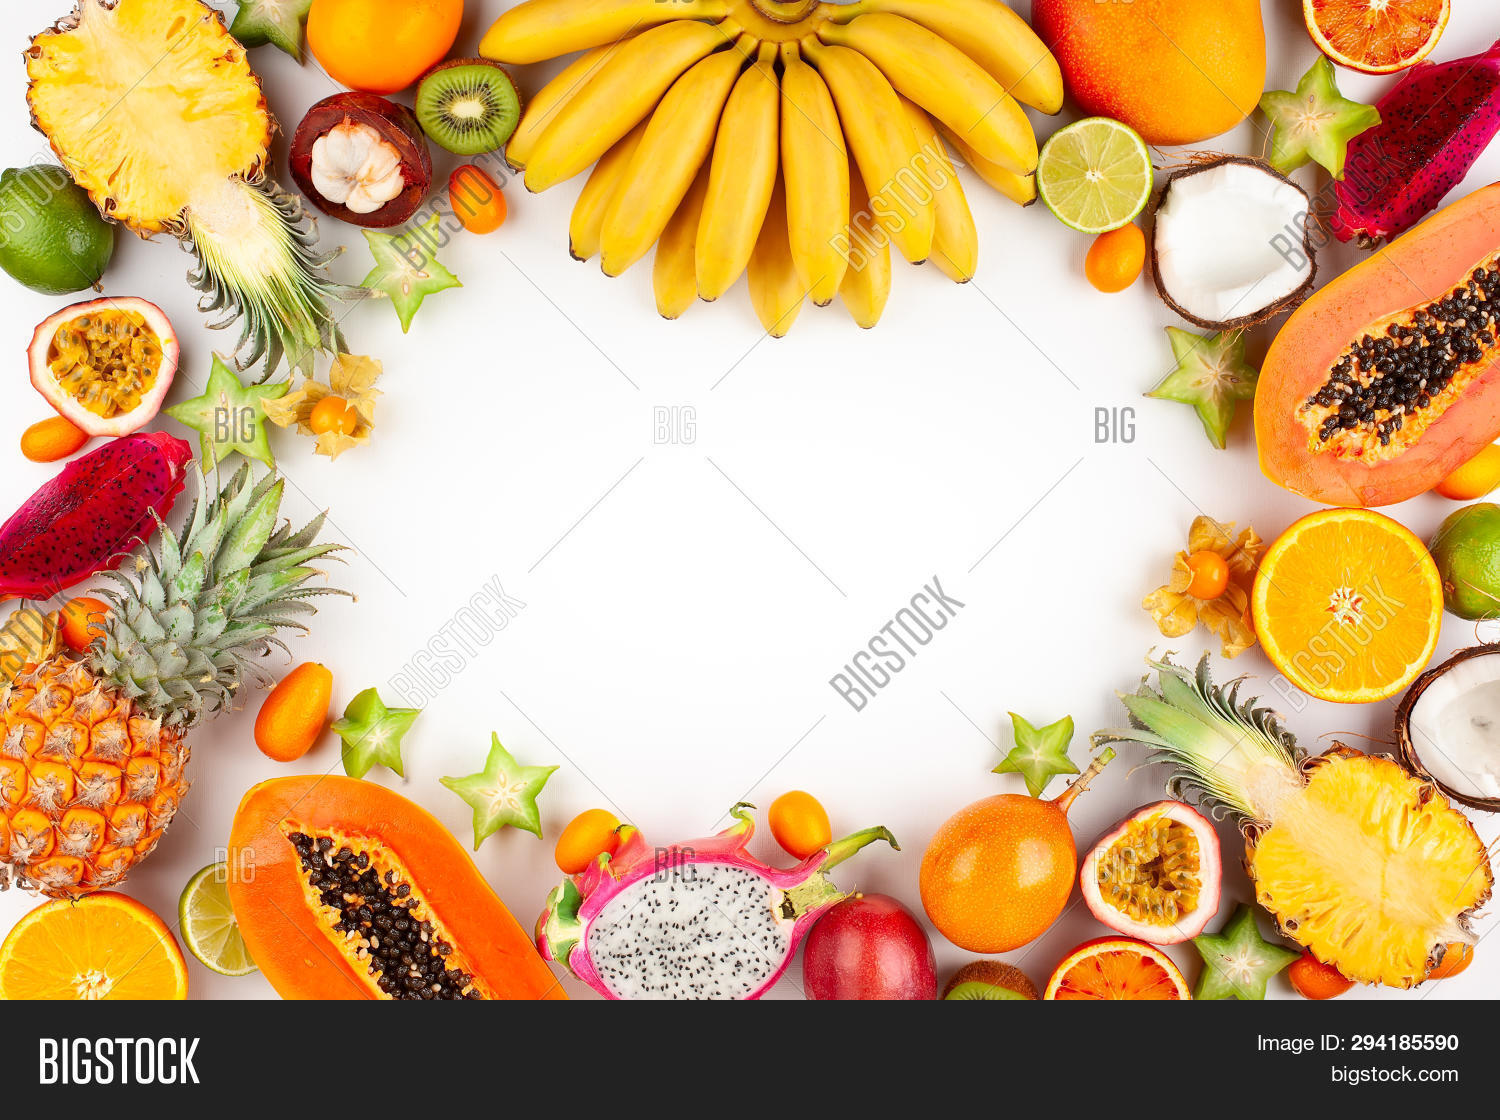 assorted,background,banana,carambola,citrus,coconut,composition,concept,copy space,creative,diet,dragon,dragon fruit,exotic,flat lay,flower,food,frame,fruit,halved,healthy eating,ingredient,kiwi,kumquat,leaf,lemon,lime,mango,mangosteen,orchid,organic,palm,papaya,passion fruit,pattern,pineapple,rambutan,raw,red,summer,sweet,tamarillo,thai,top view,trend,tropic,variation,vegan,vitamin,white